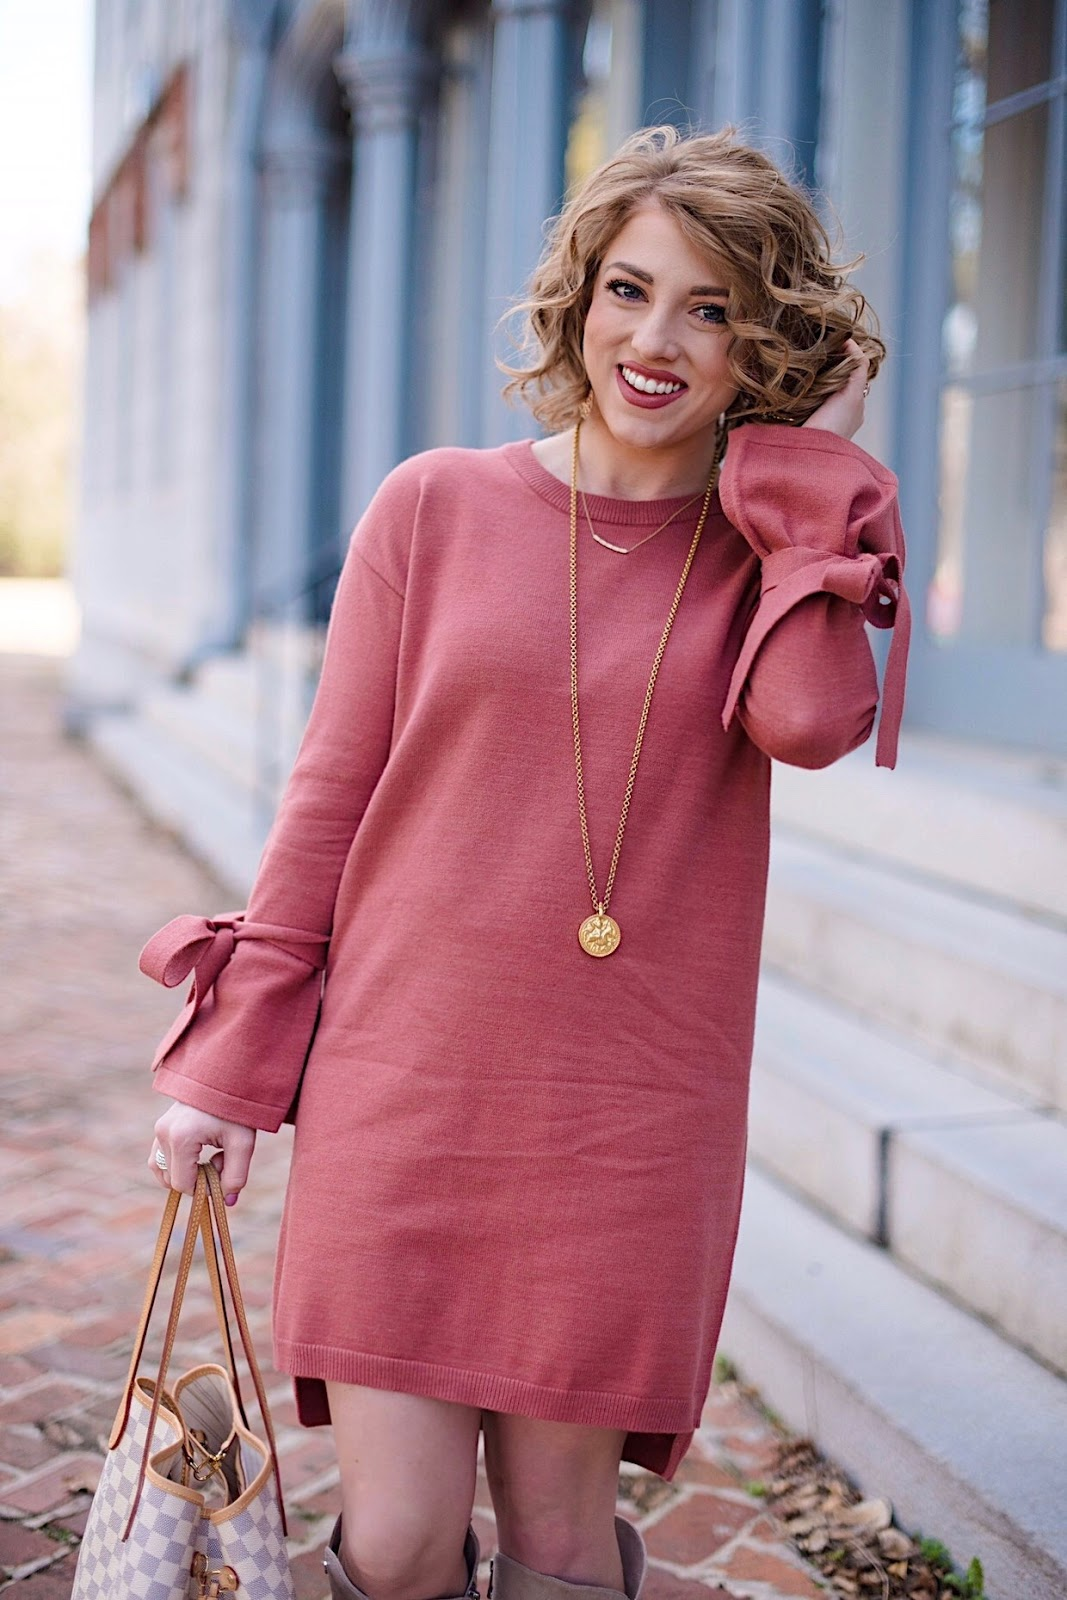 Tied Sleeve Sweater Dress - Something Delightful Blog